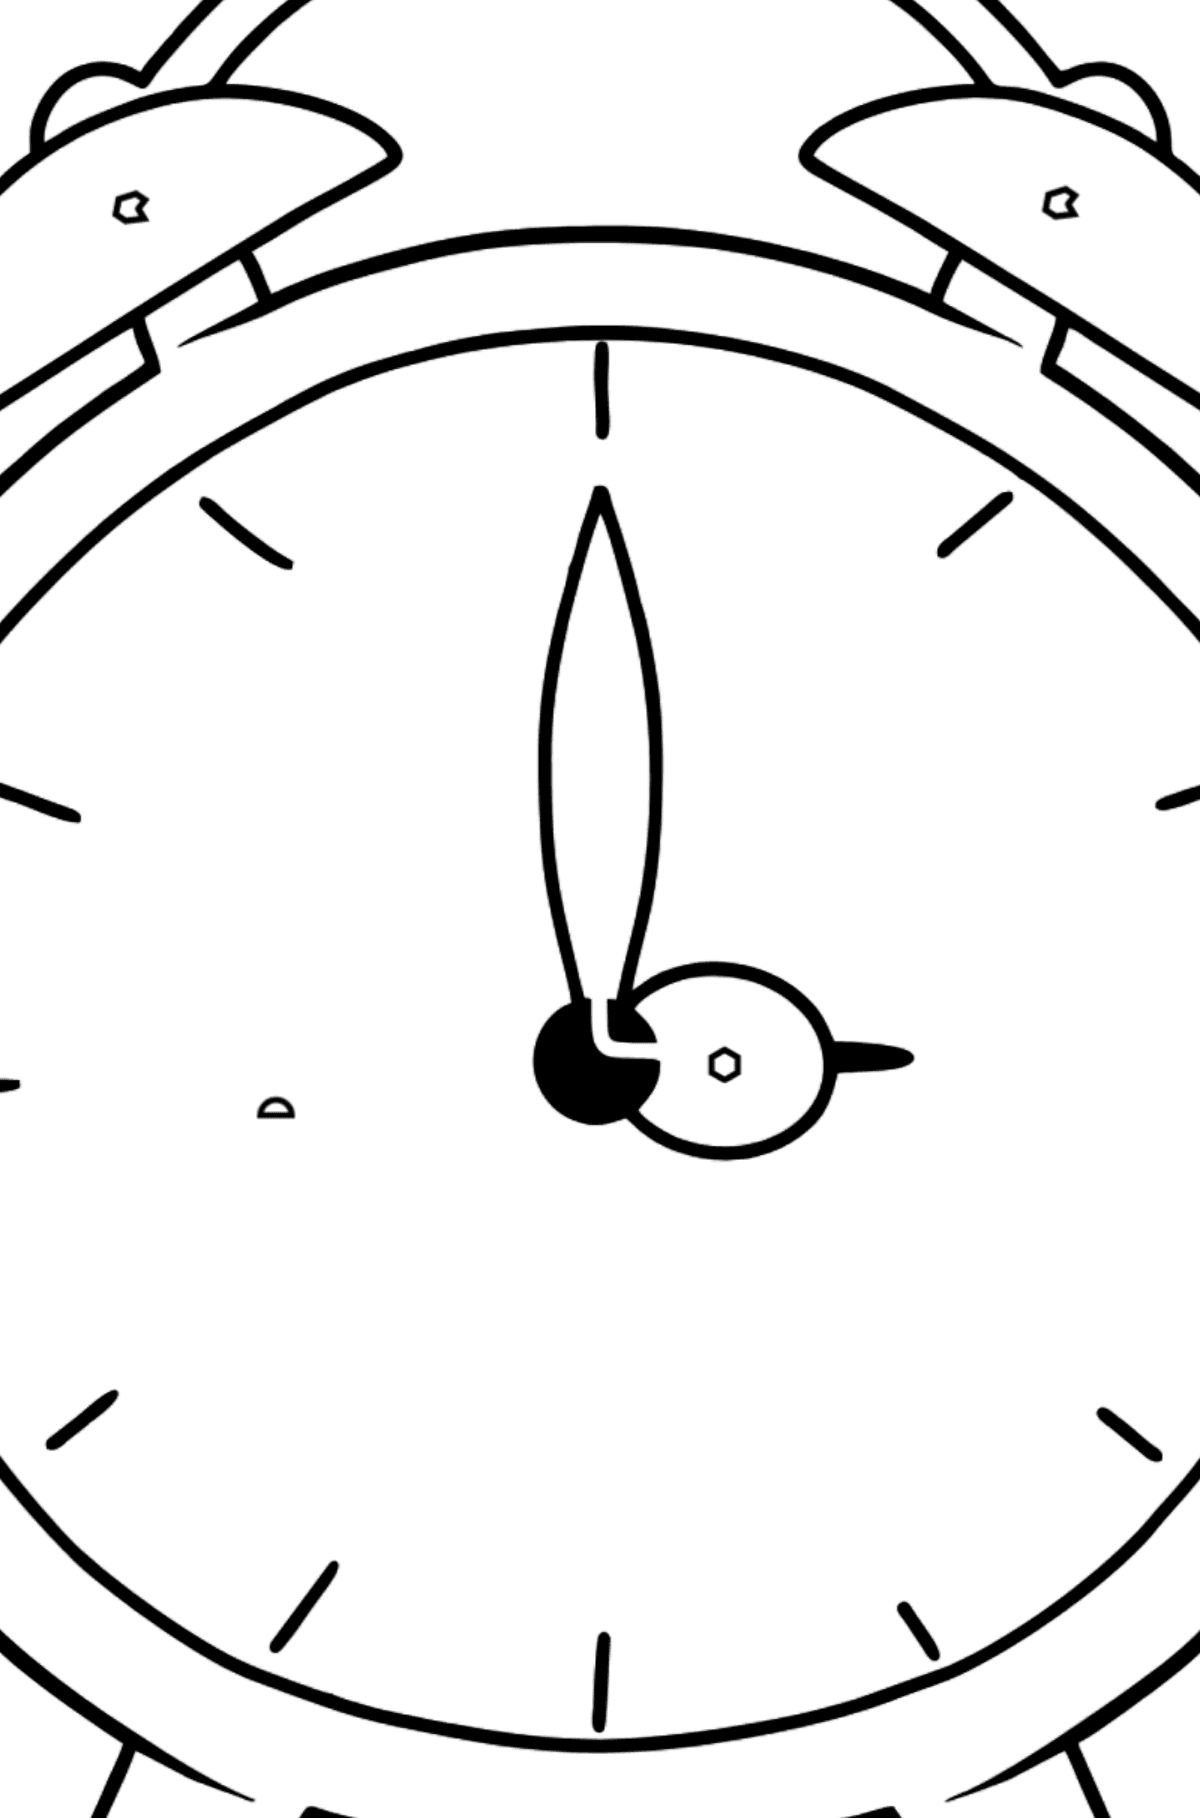 Alarm Clock coloring page - Coloring by Geometric Shapes for Kids